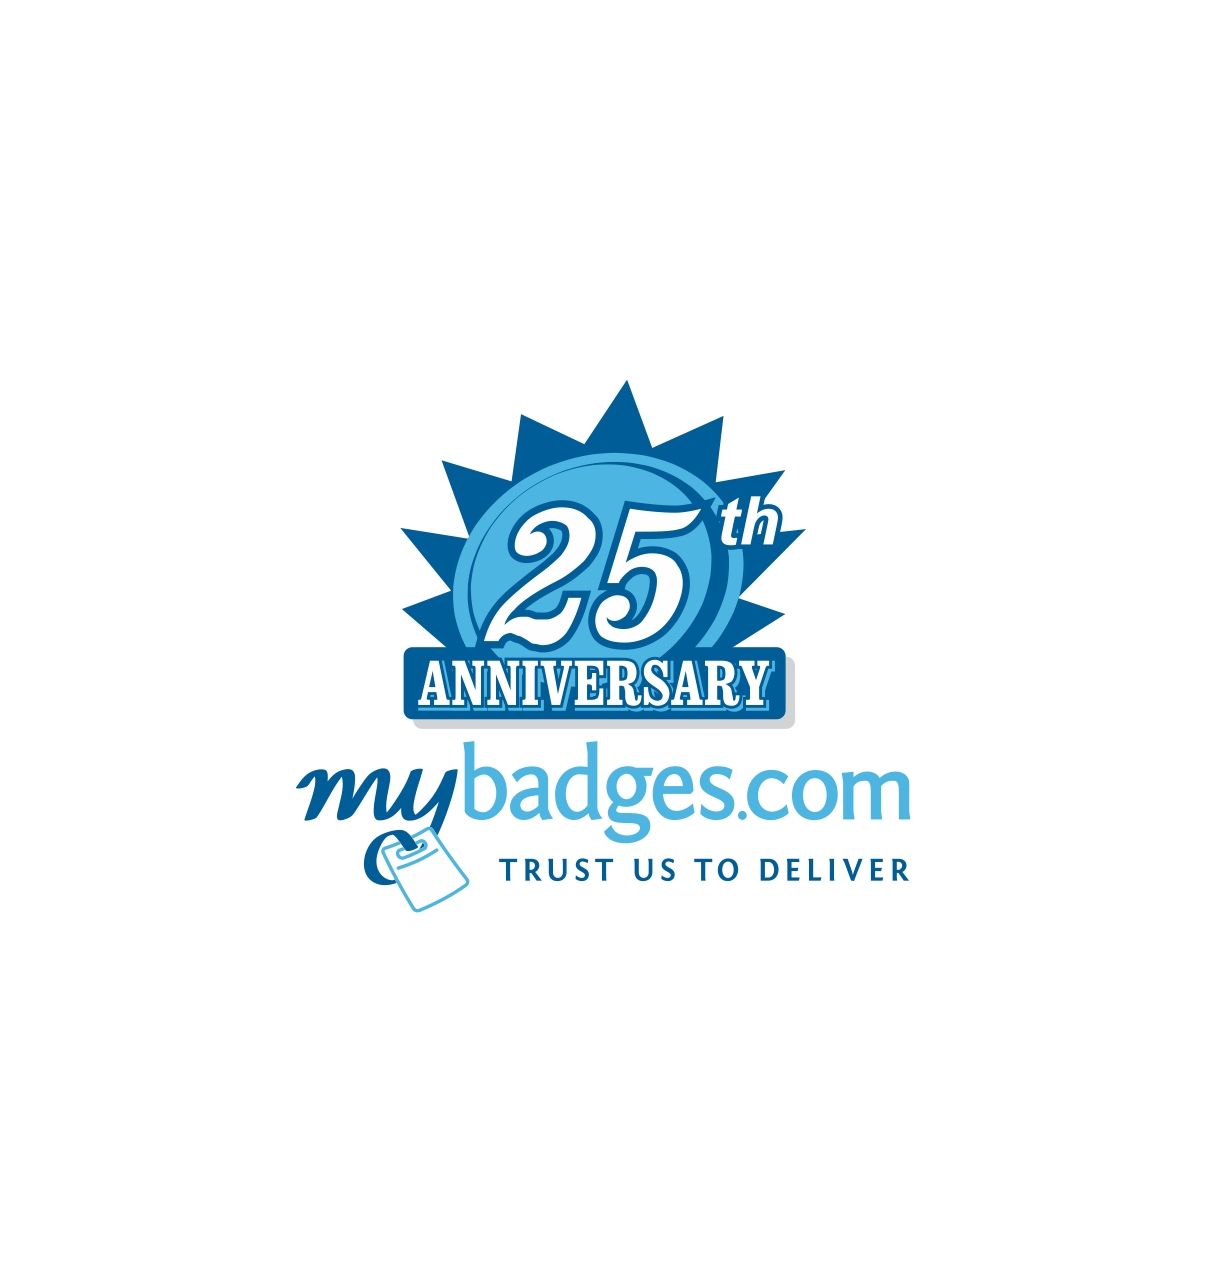 Logo Design by haidu - Entry No. 117 in the Logo Design Contest 25th Anniversary Logo Design Wanted for MyBadges.com.